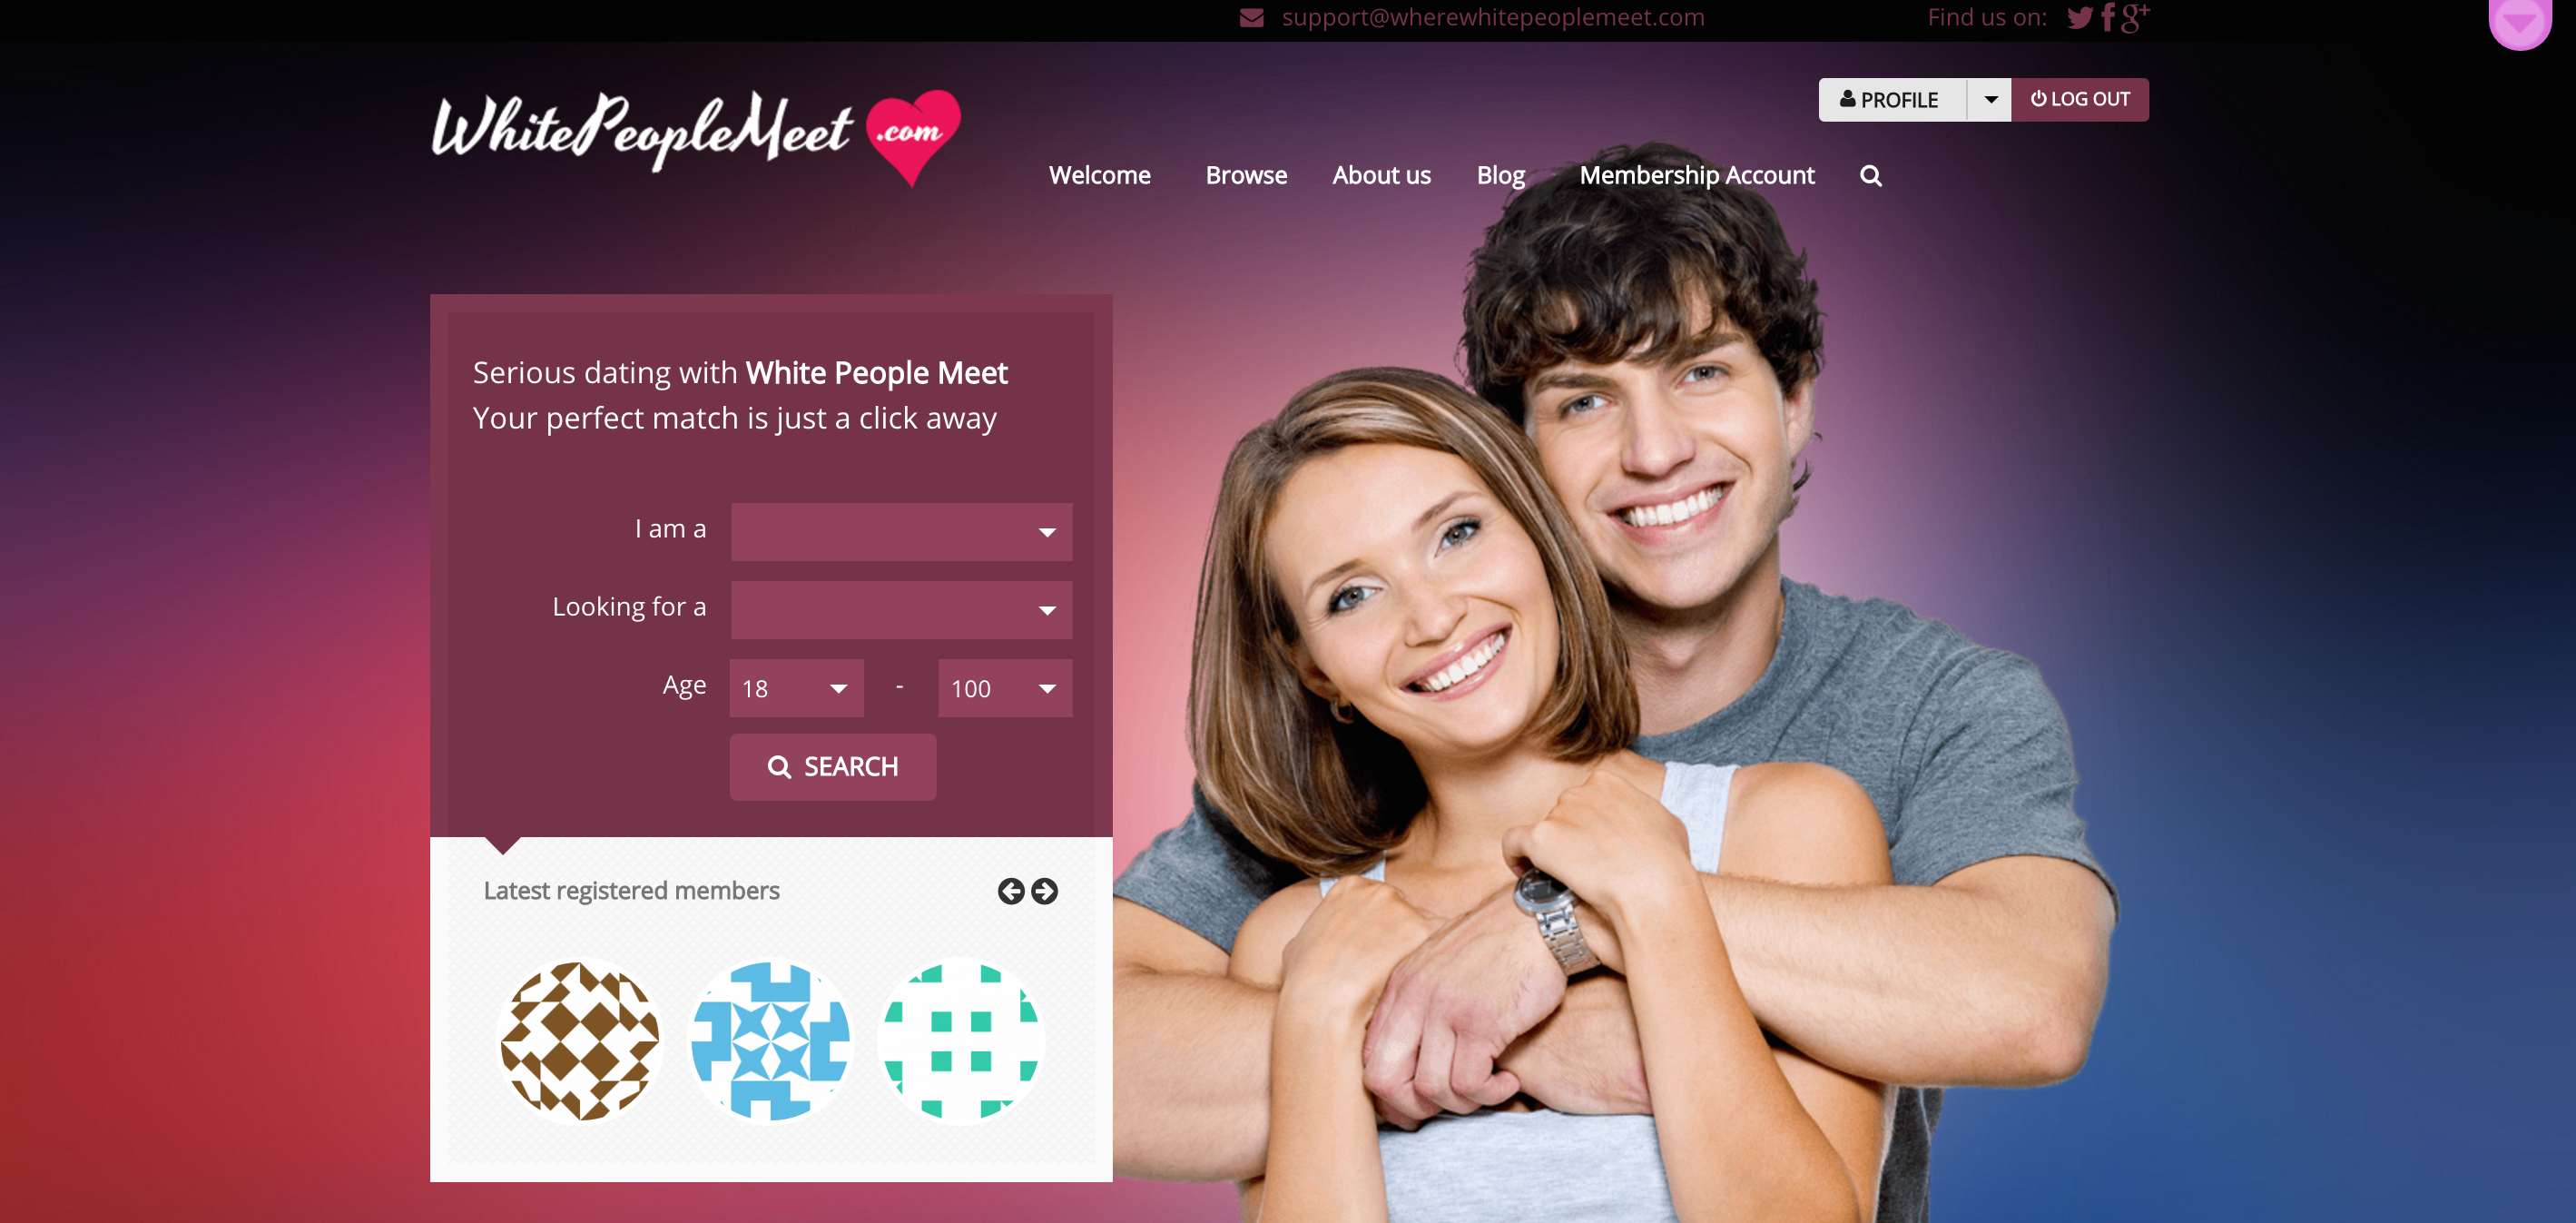 How to find a specific person on a dating site